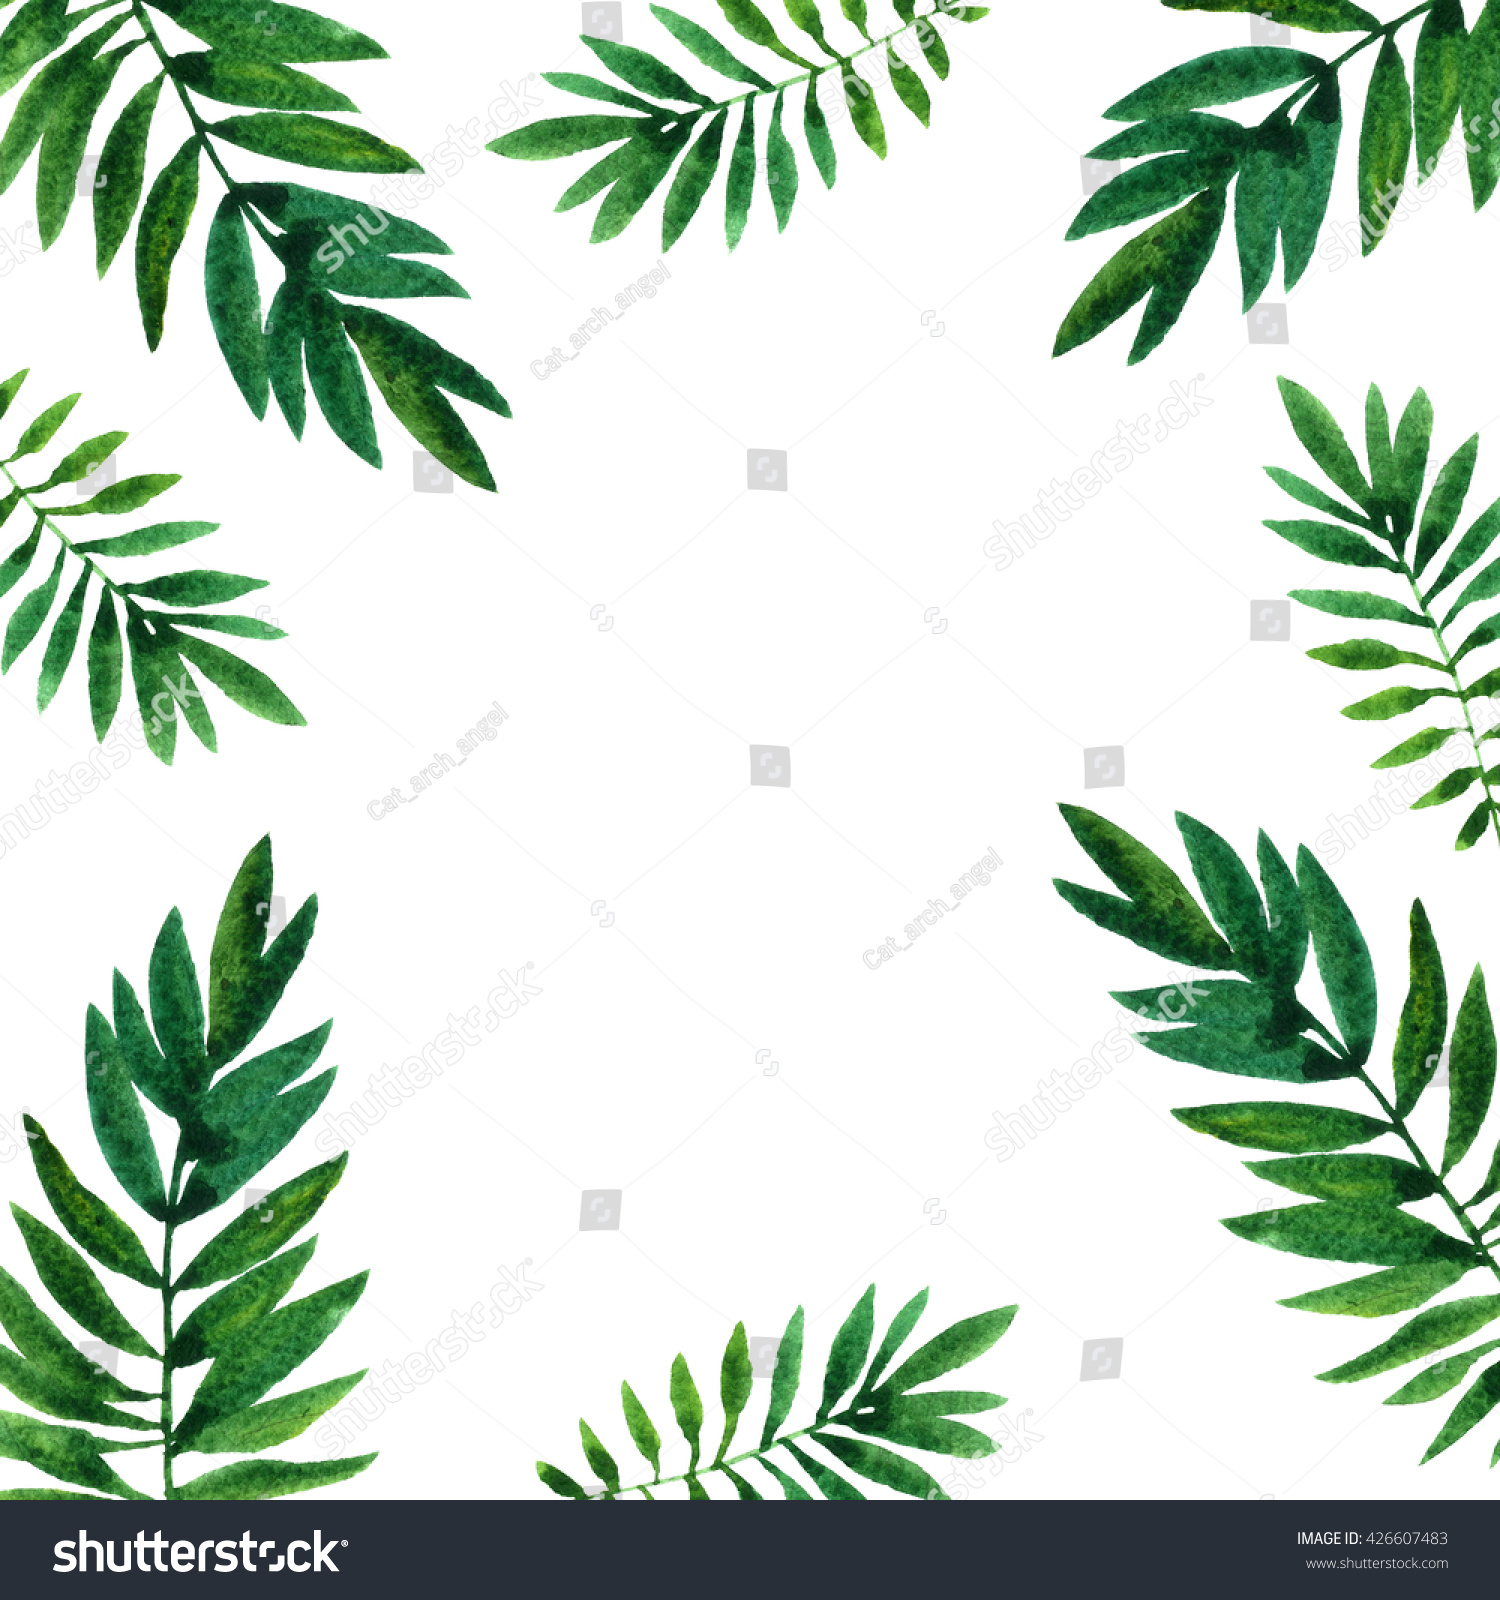 background watercolor green leaves palm tree stock illustration